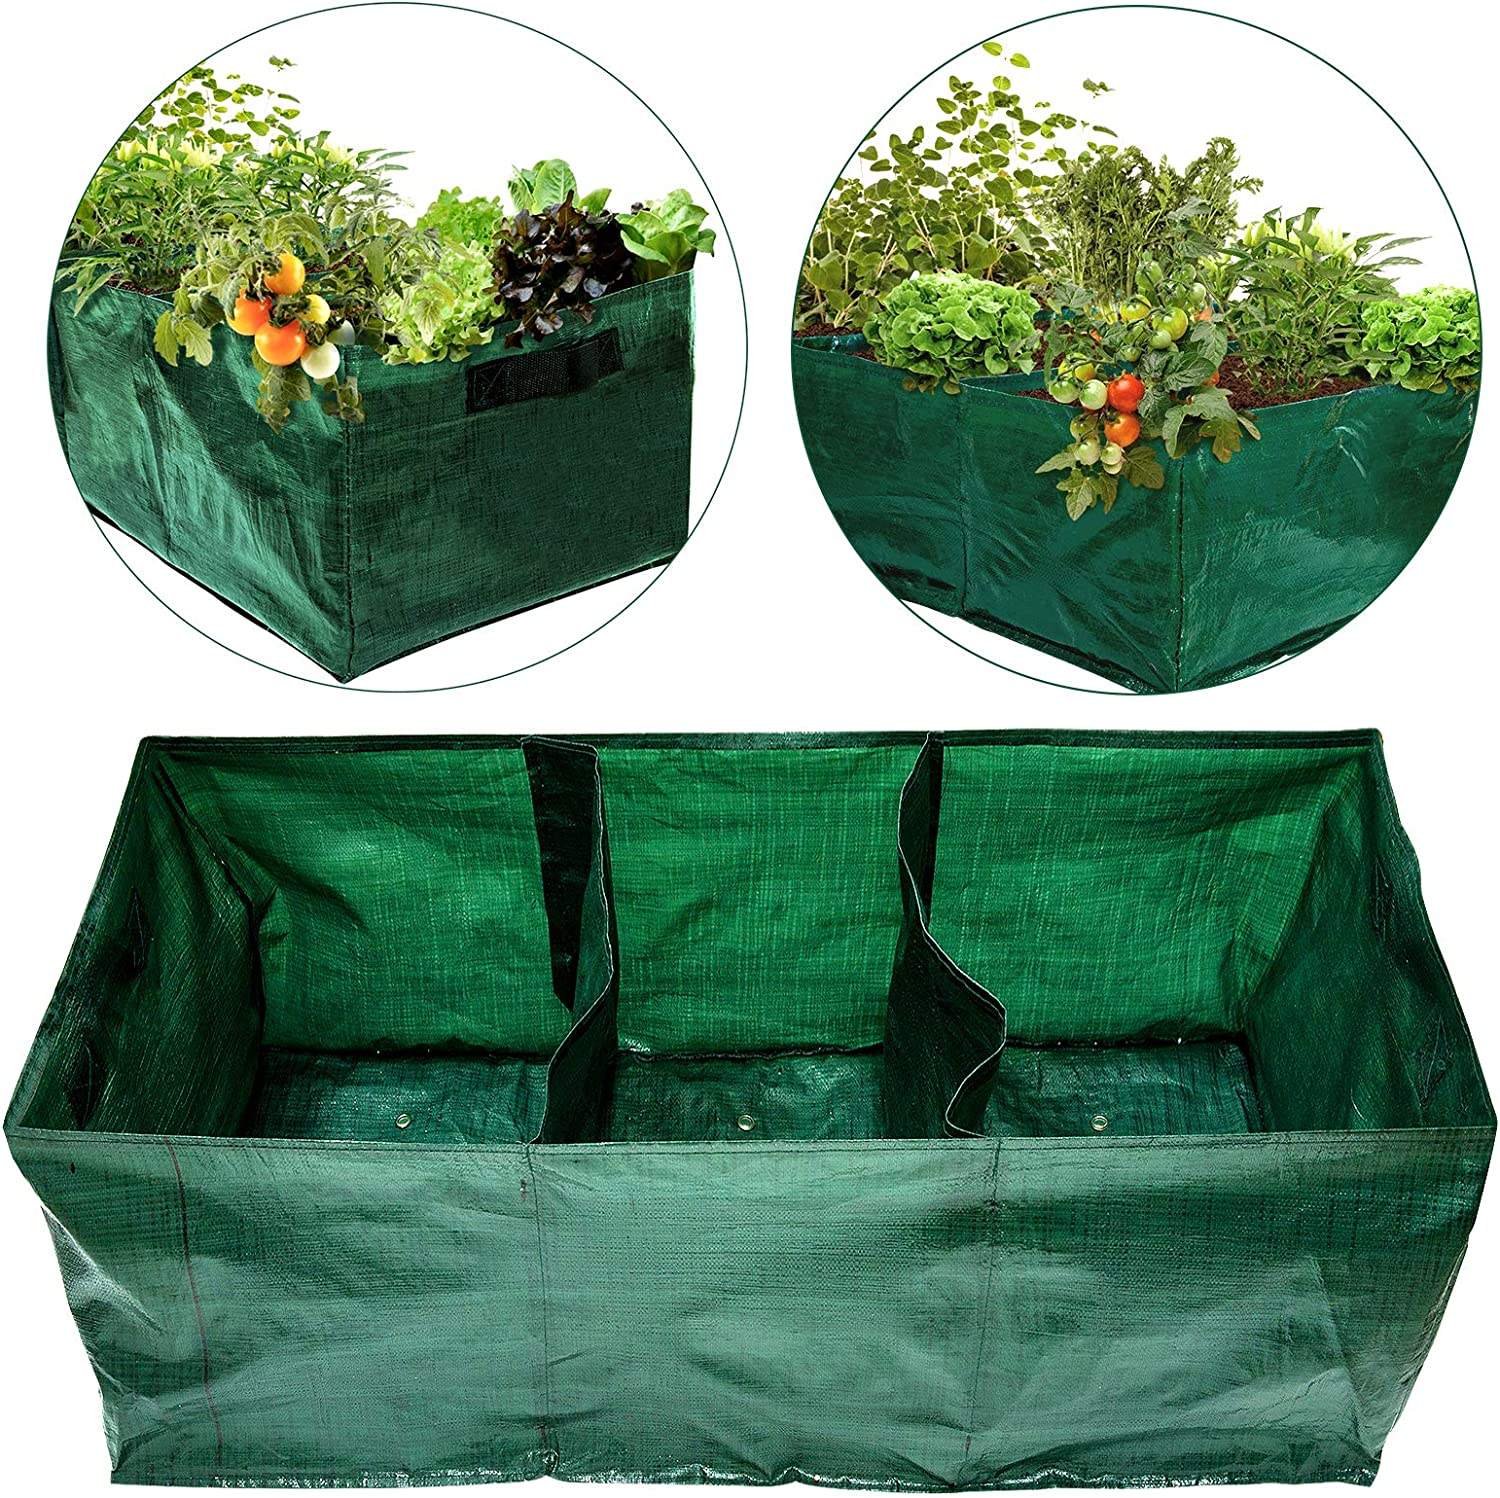 28 Gallon Exlarge Plastic Raised Planting Bed with 3 Compartments- 3 Divided Grids Rectangle Garden Grow Bag Potato Tomato Planter Pot Containers for Vegetables Plant Flowers Growing (Dark Green)